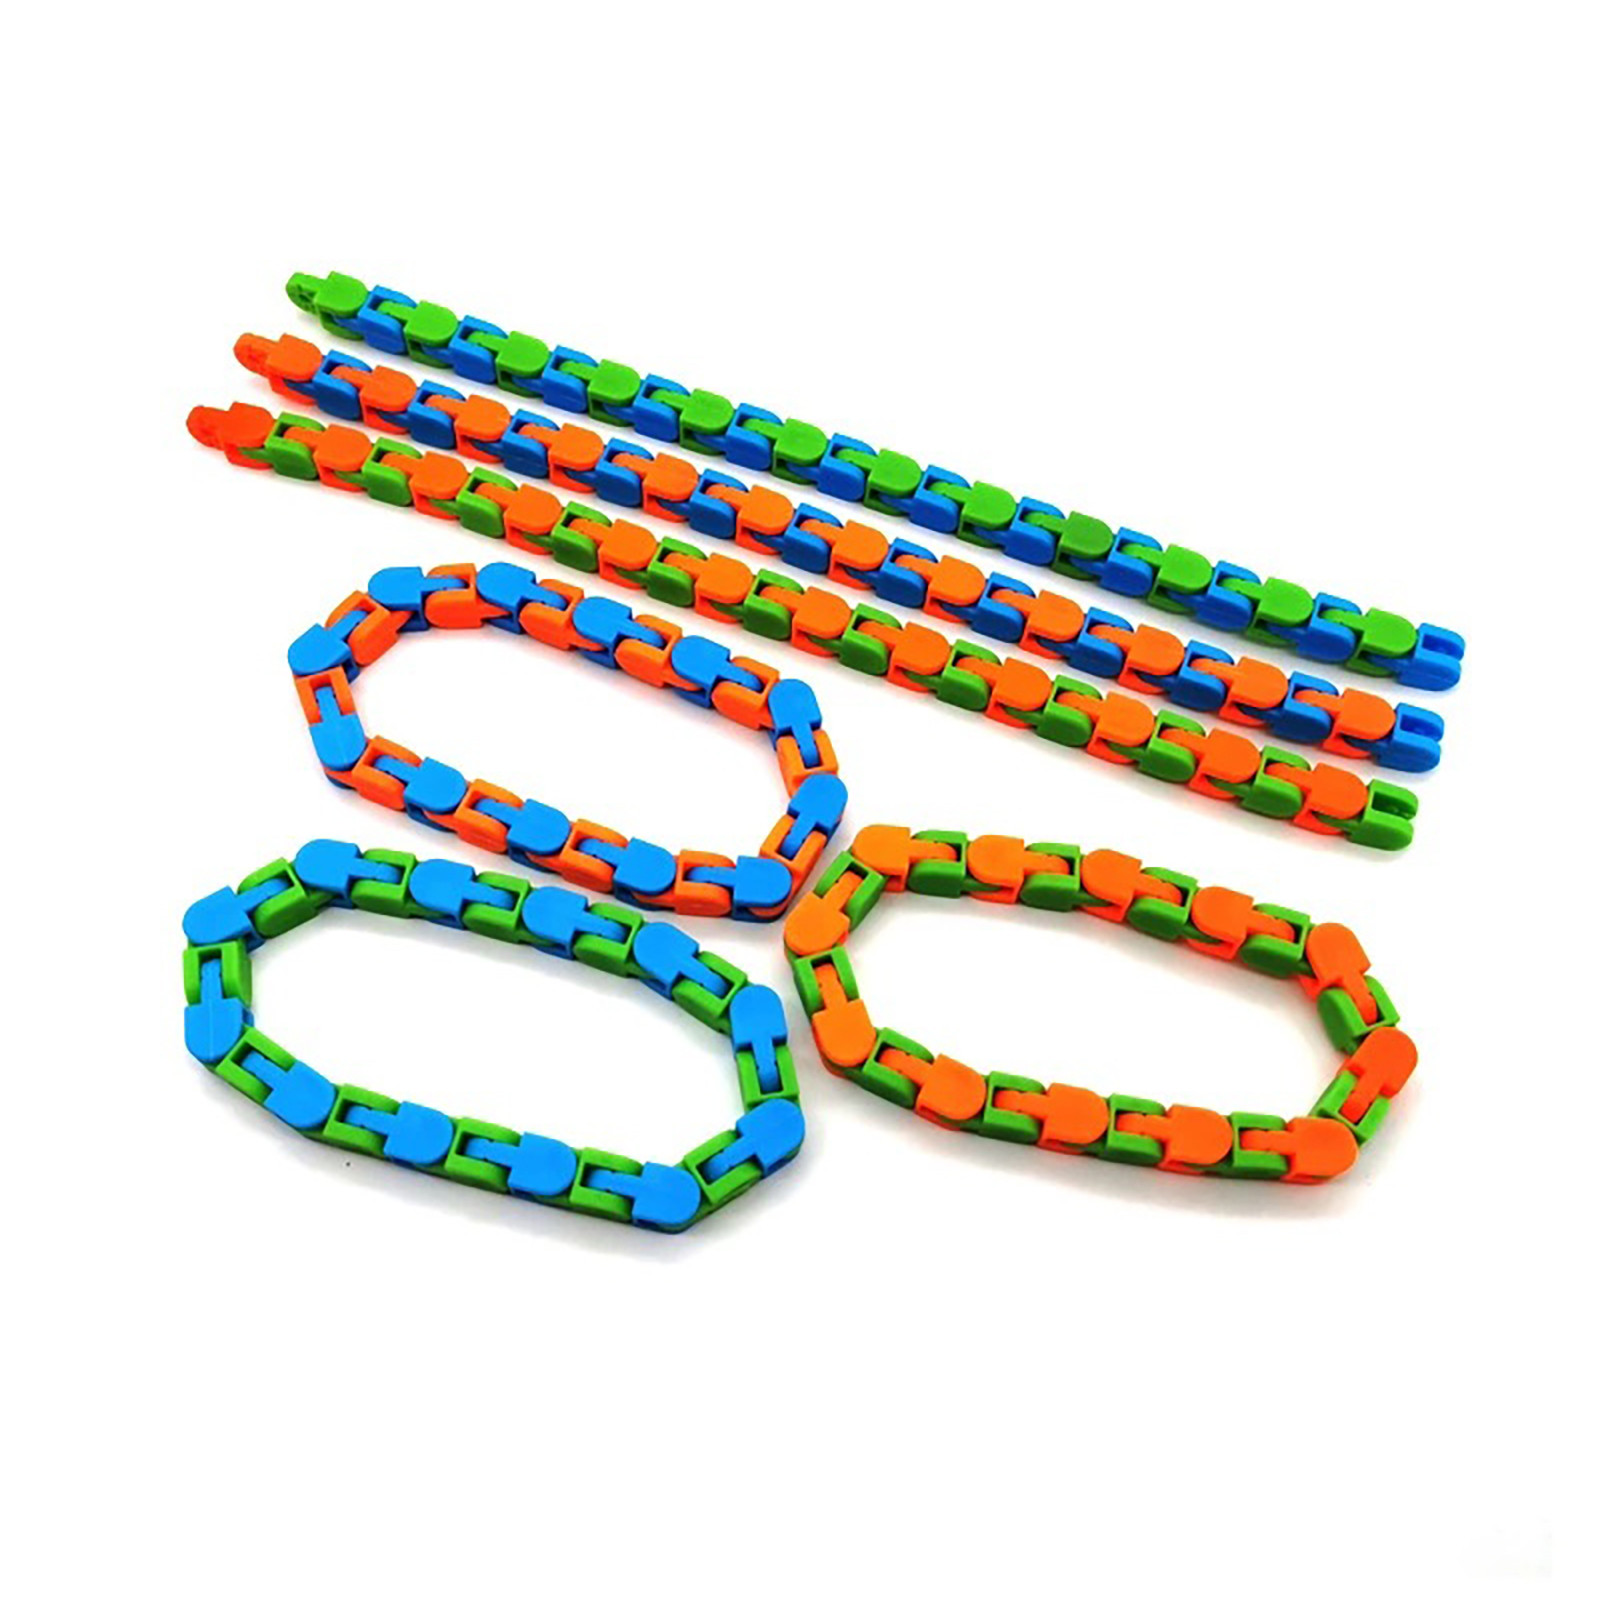 Sensory Toy Fidget-Toys Puzzle Autism Stress Snake Colorful Kids Relief-Rotate Classic